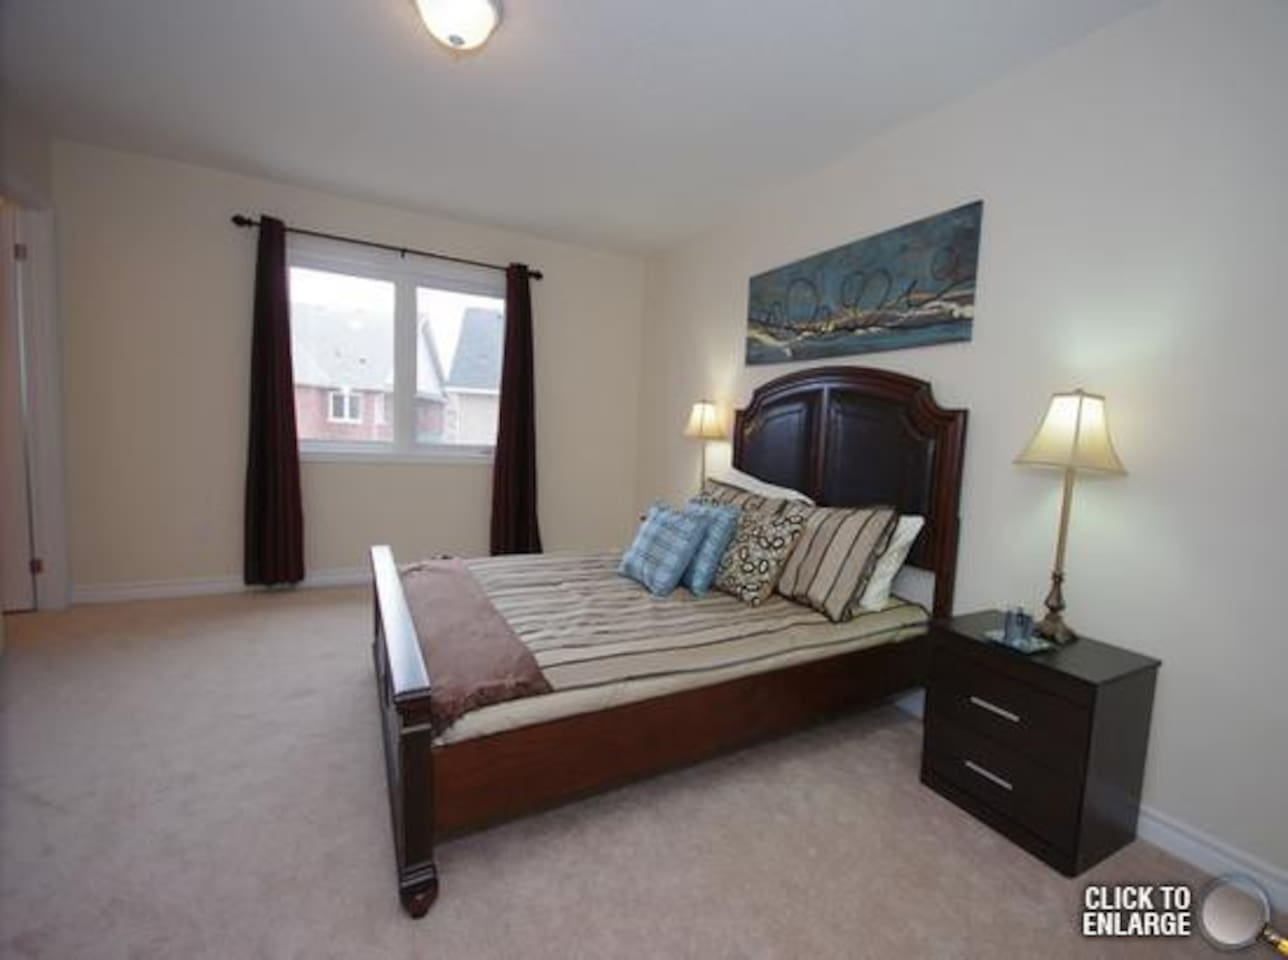 king size bed in master bedroom upstairs with ensuite